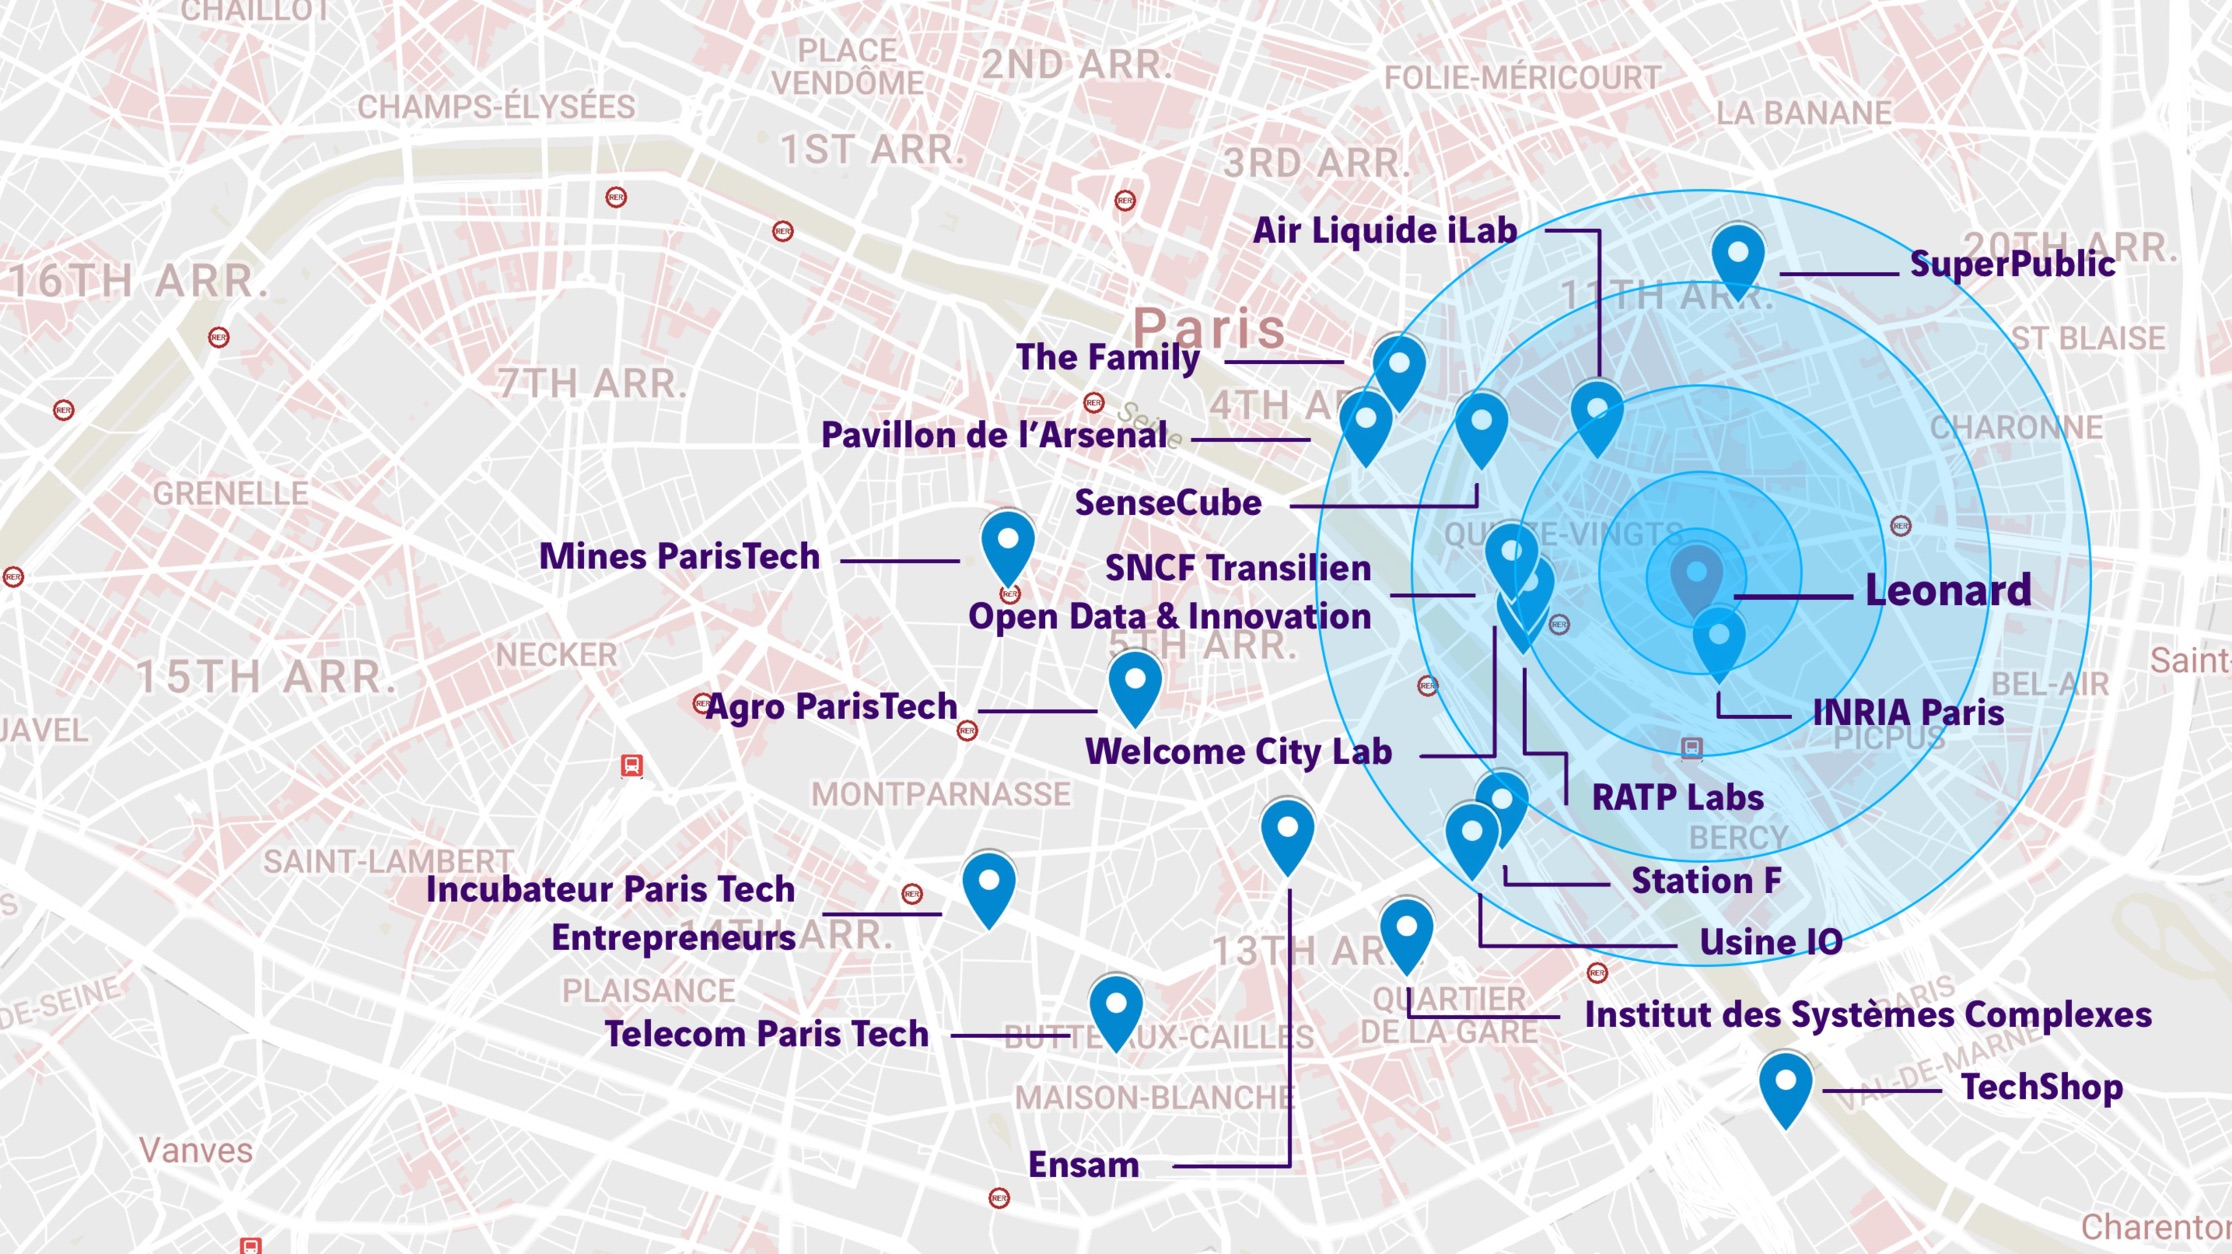 Carte de l'Arc de l'innovation parisien